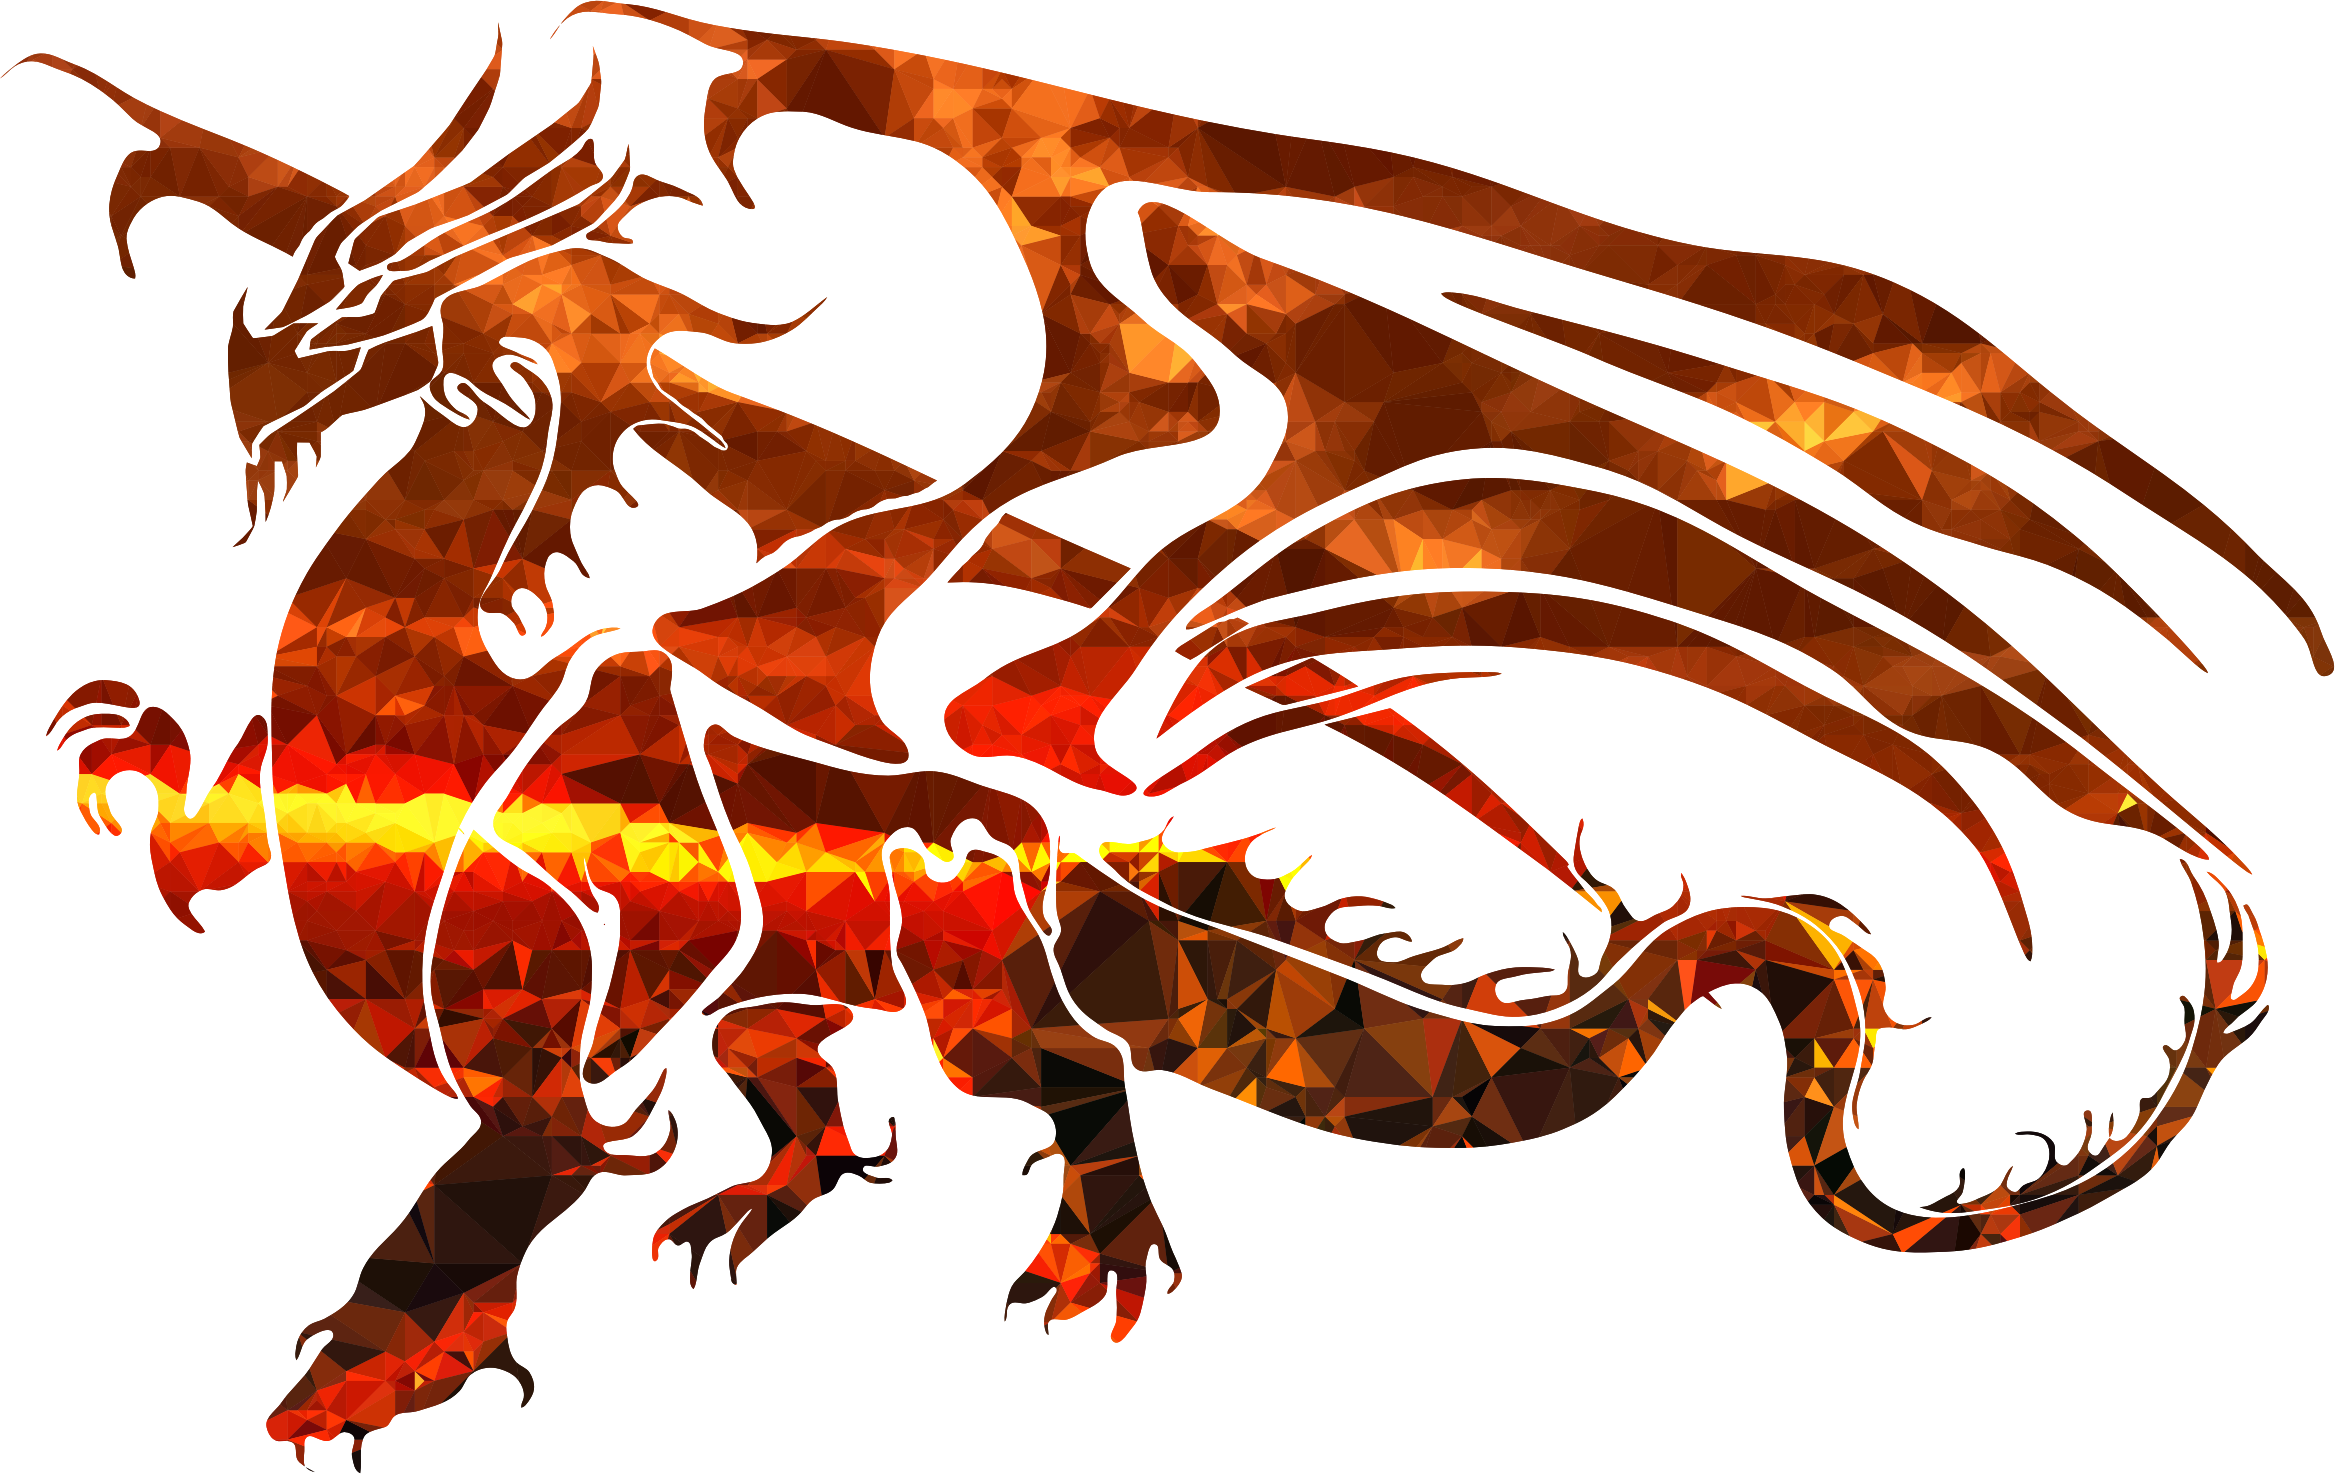 Dragon .png. Magma icons png free